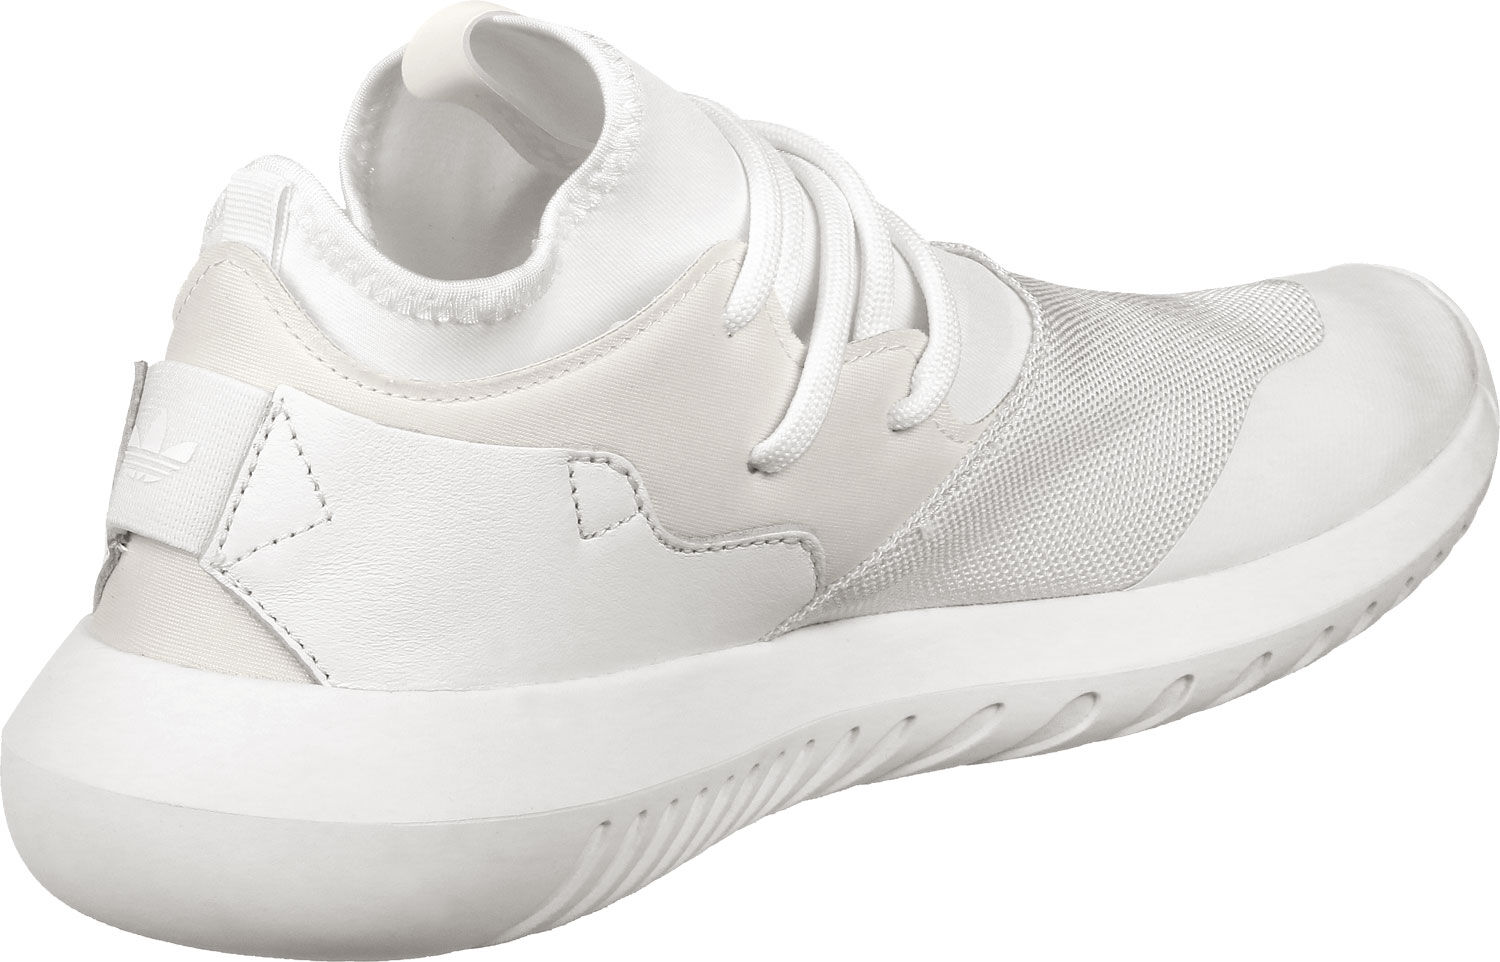 adidas Tubular Entrap W - Sneakers Low at Stylefile